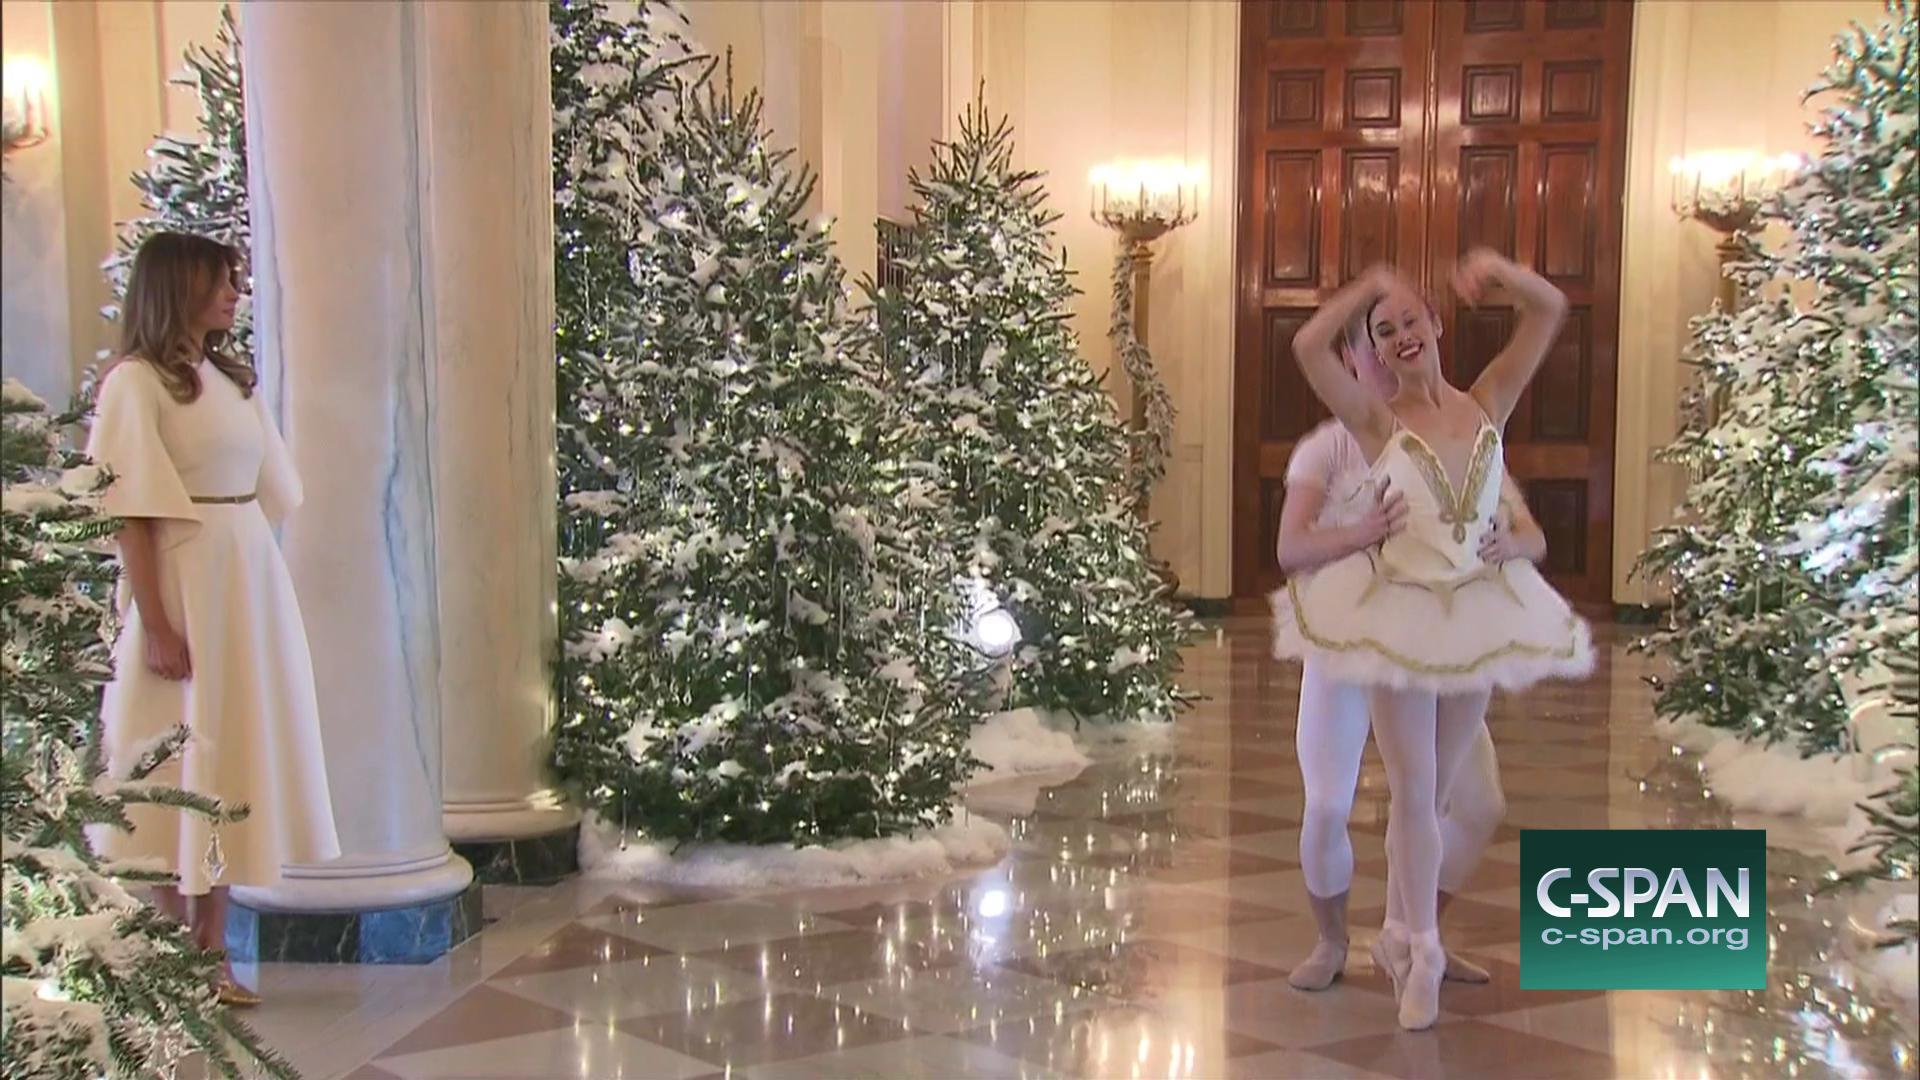 lady meets children making white house holiday decorations nov 27 2017 - White House Christmas Decorations